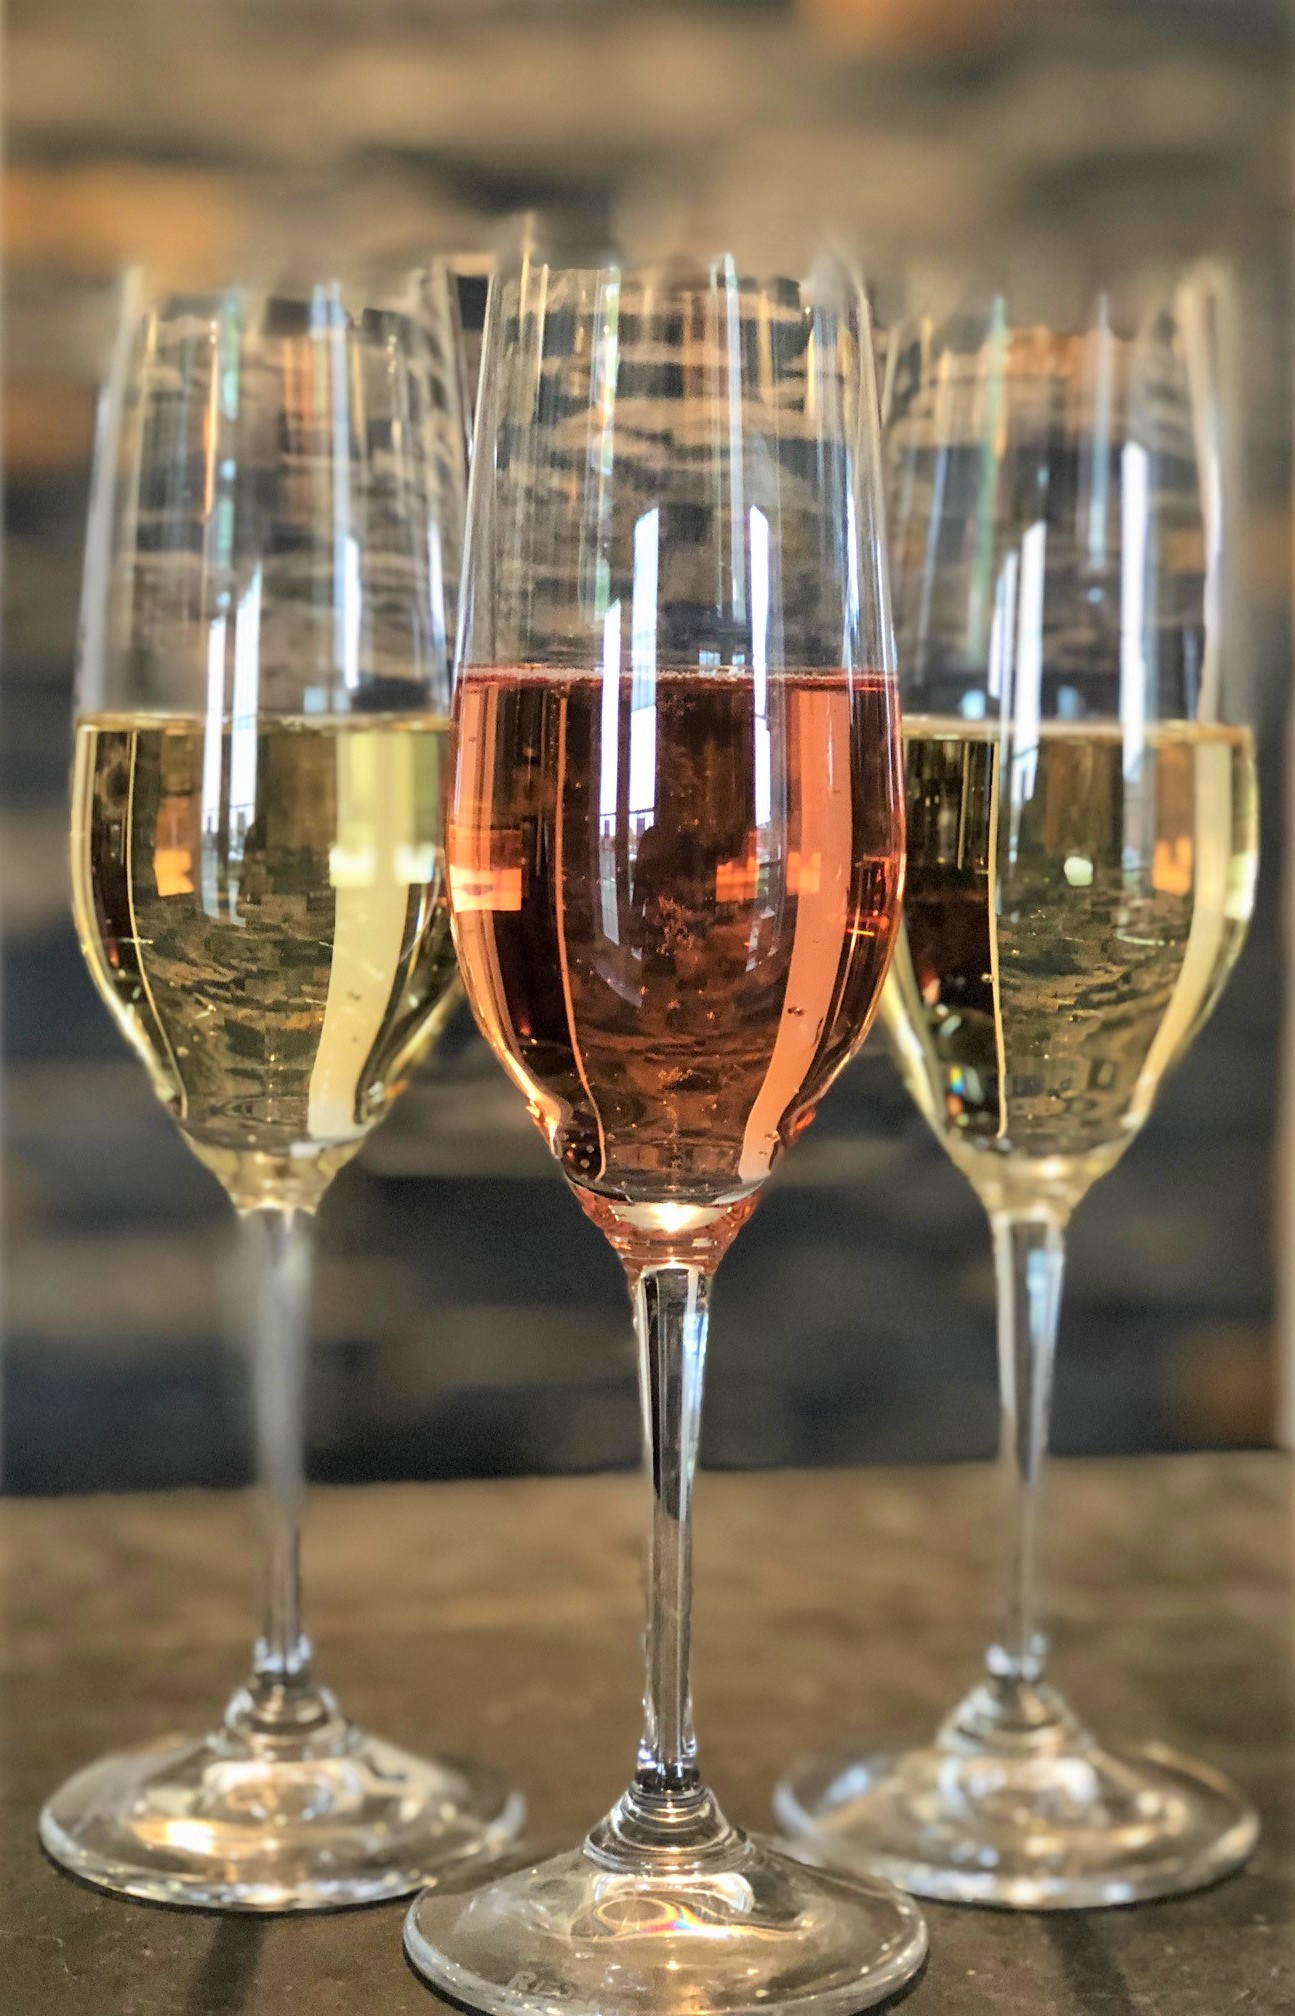 Three sparkling wine glasses